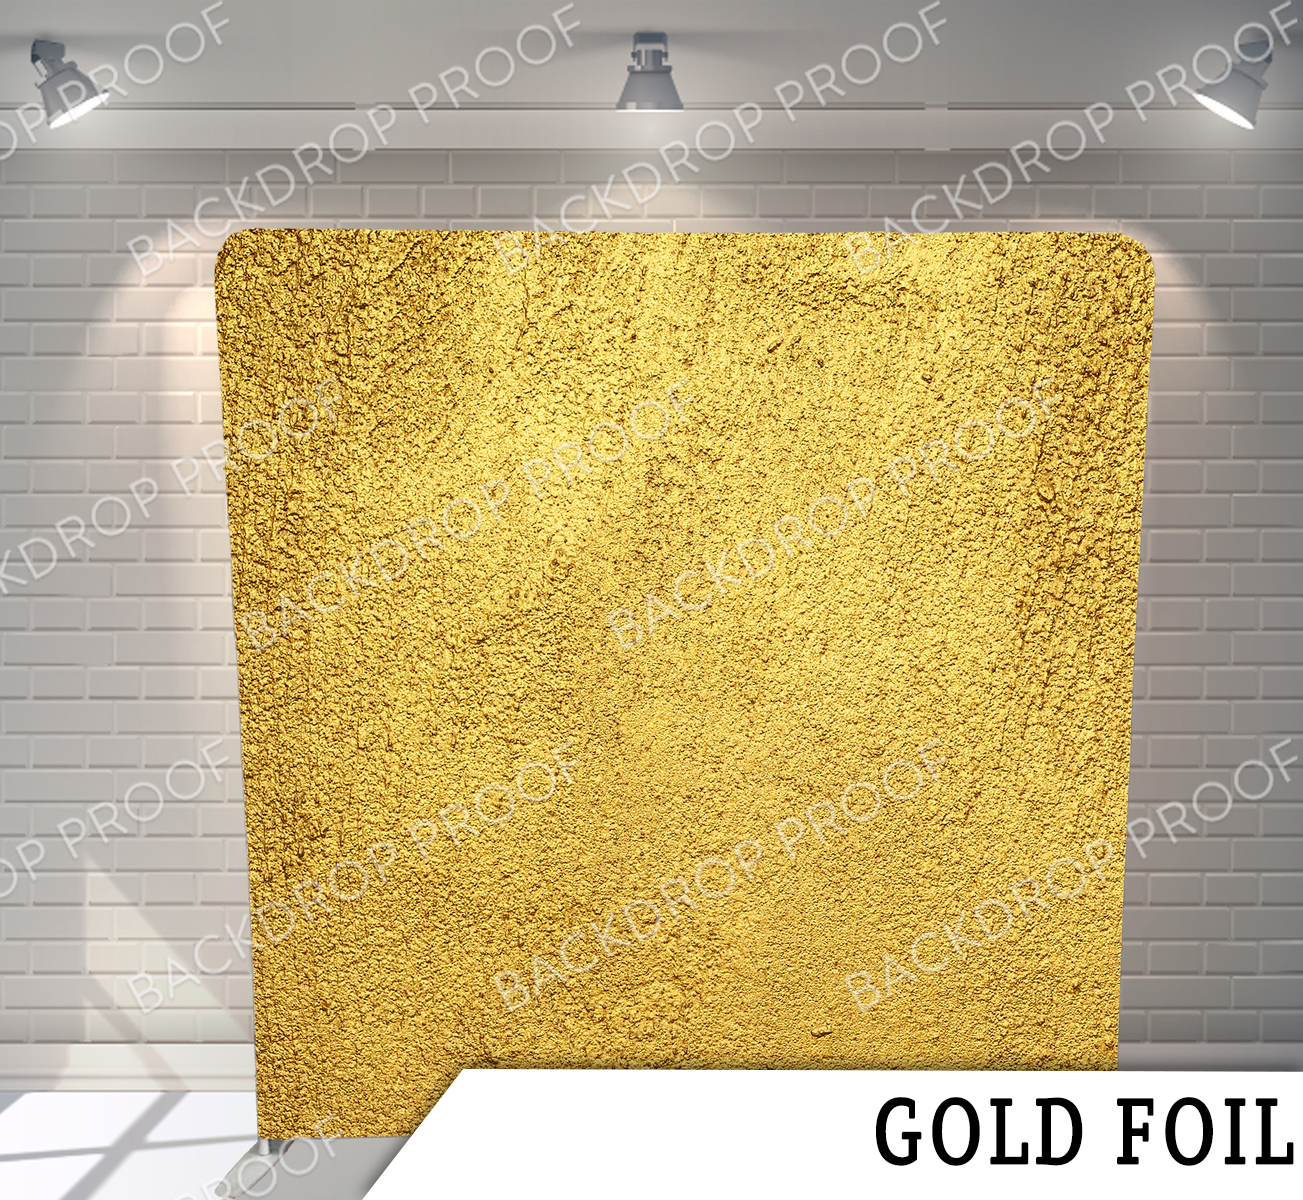 Pillow_GOLDFOIL_G (1).jpg